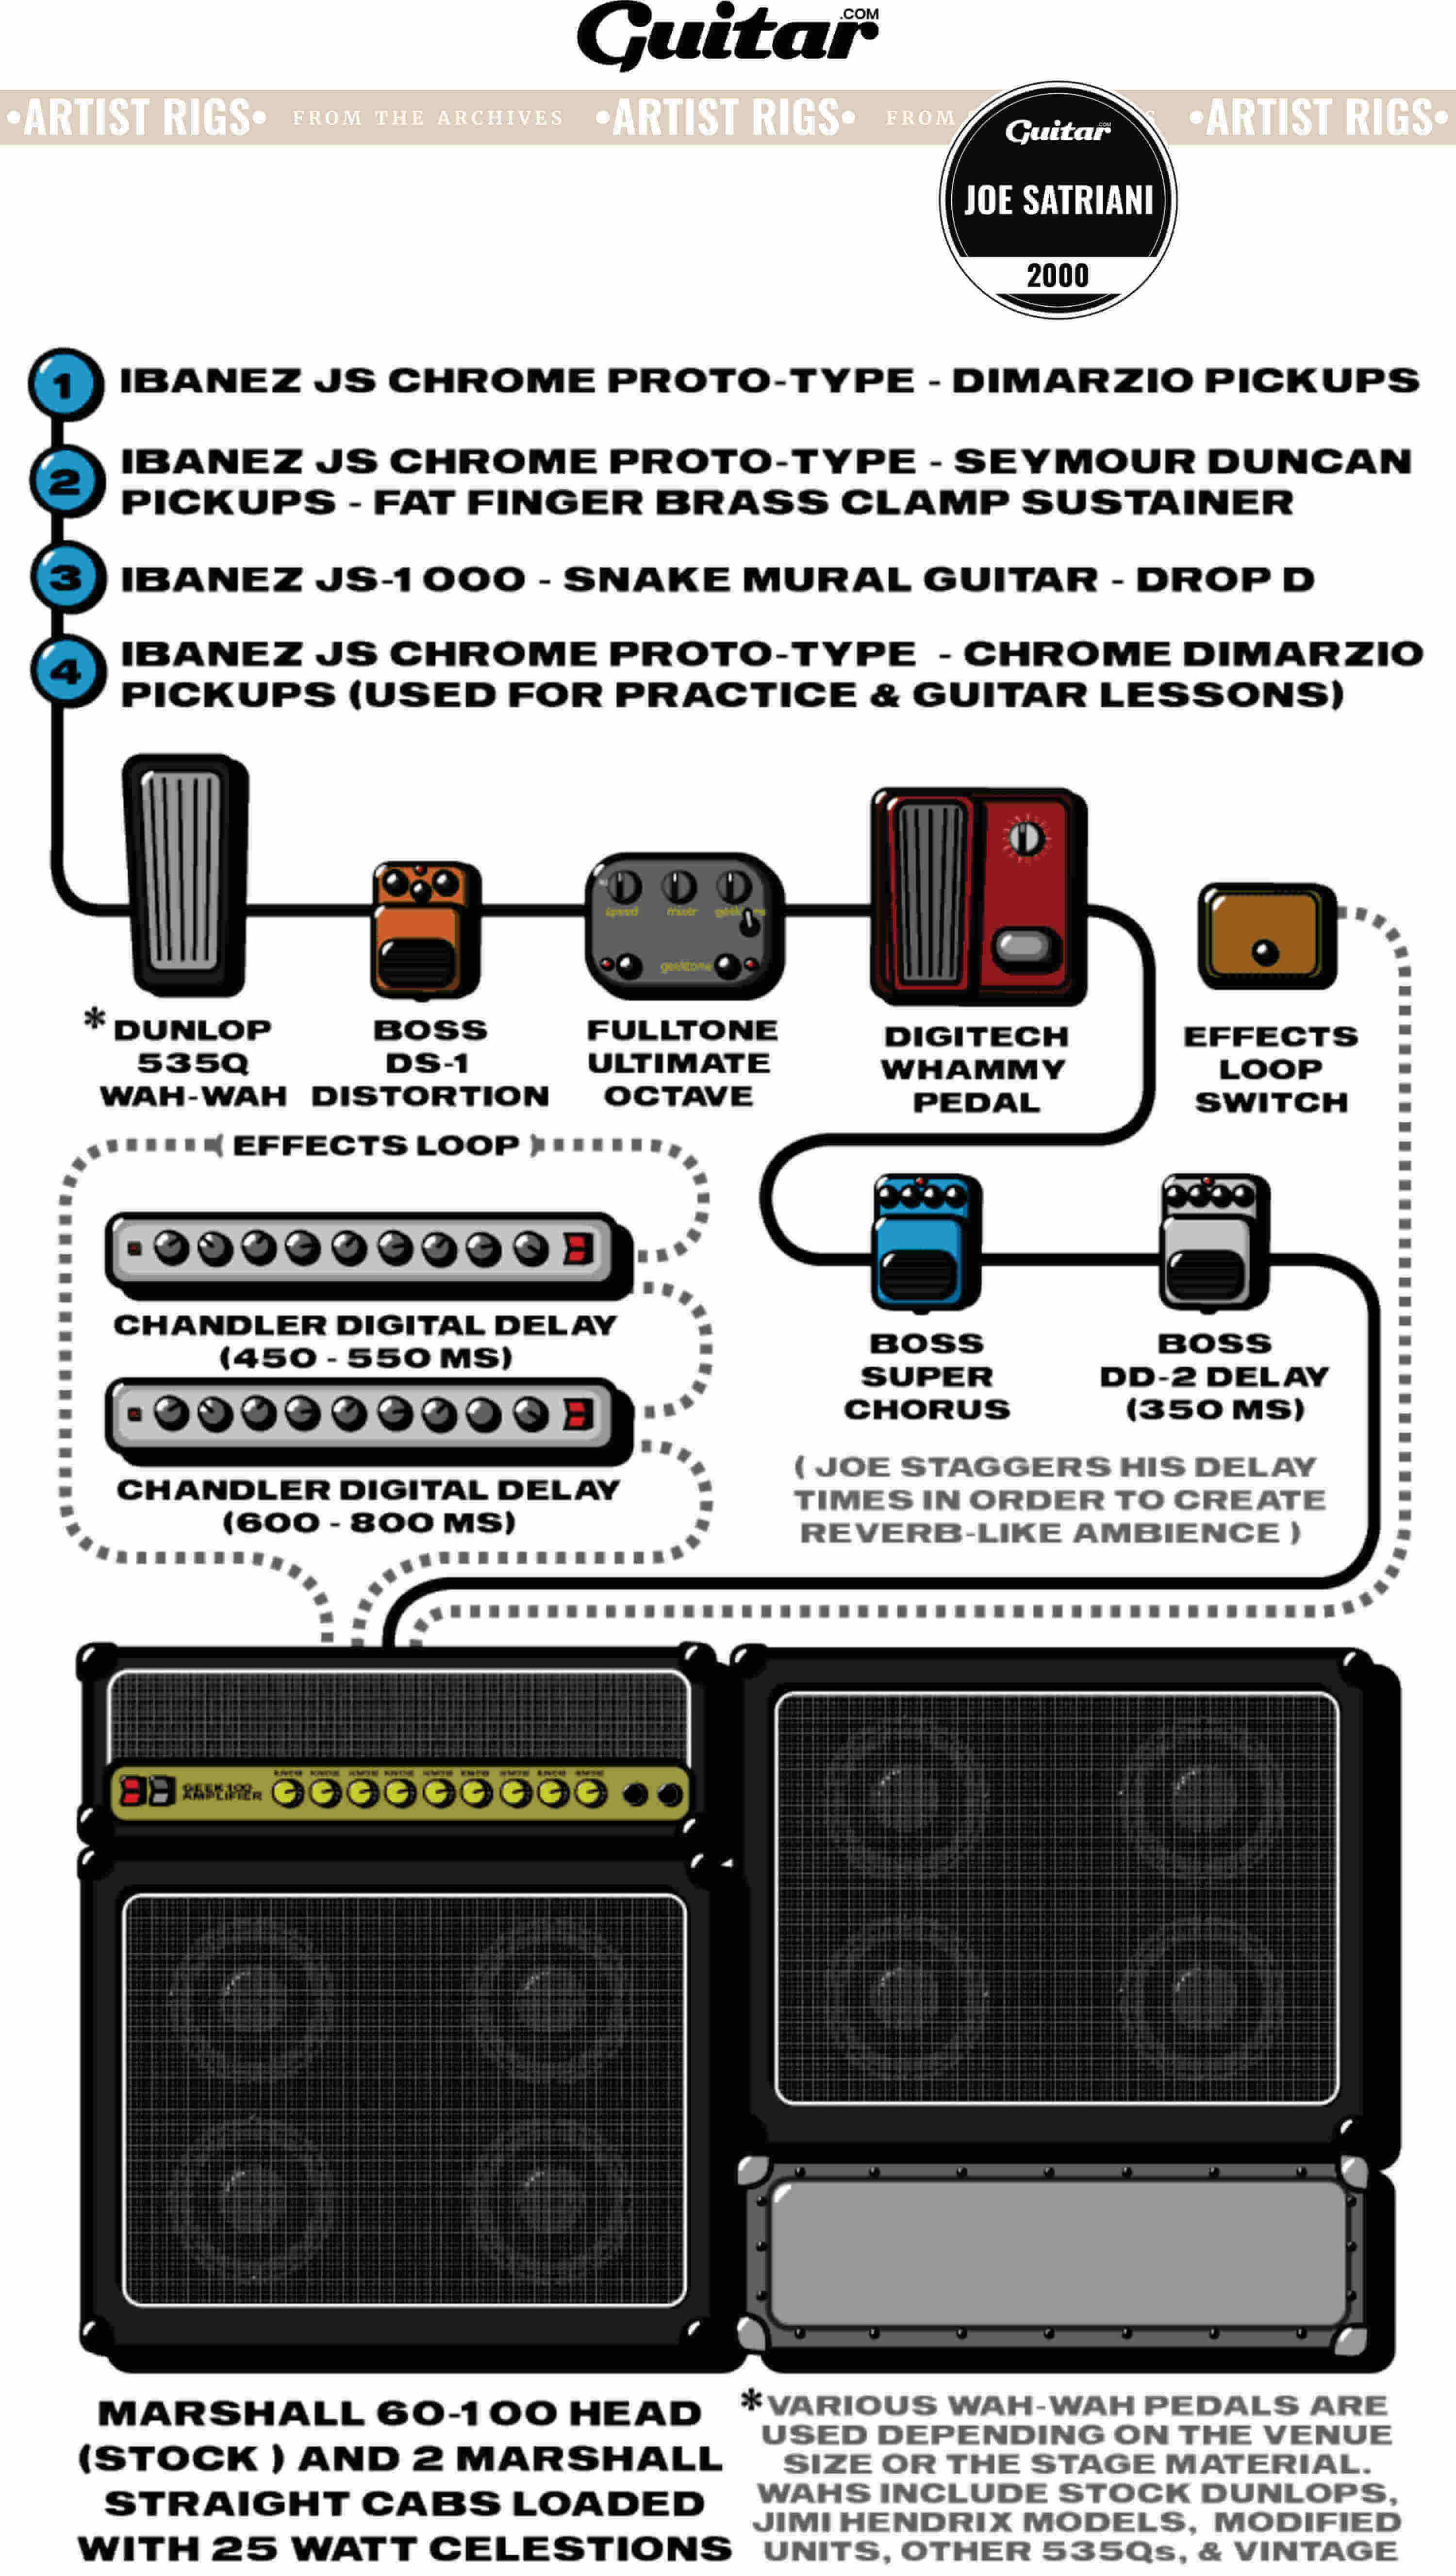 Rig Diagram: Joe Satriani (2000)